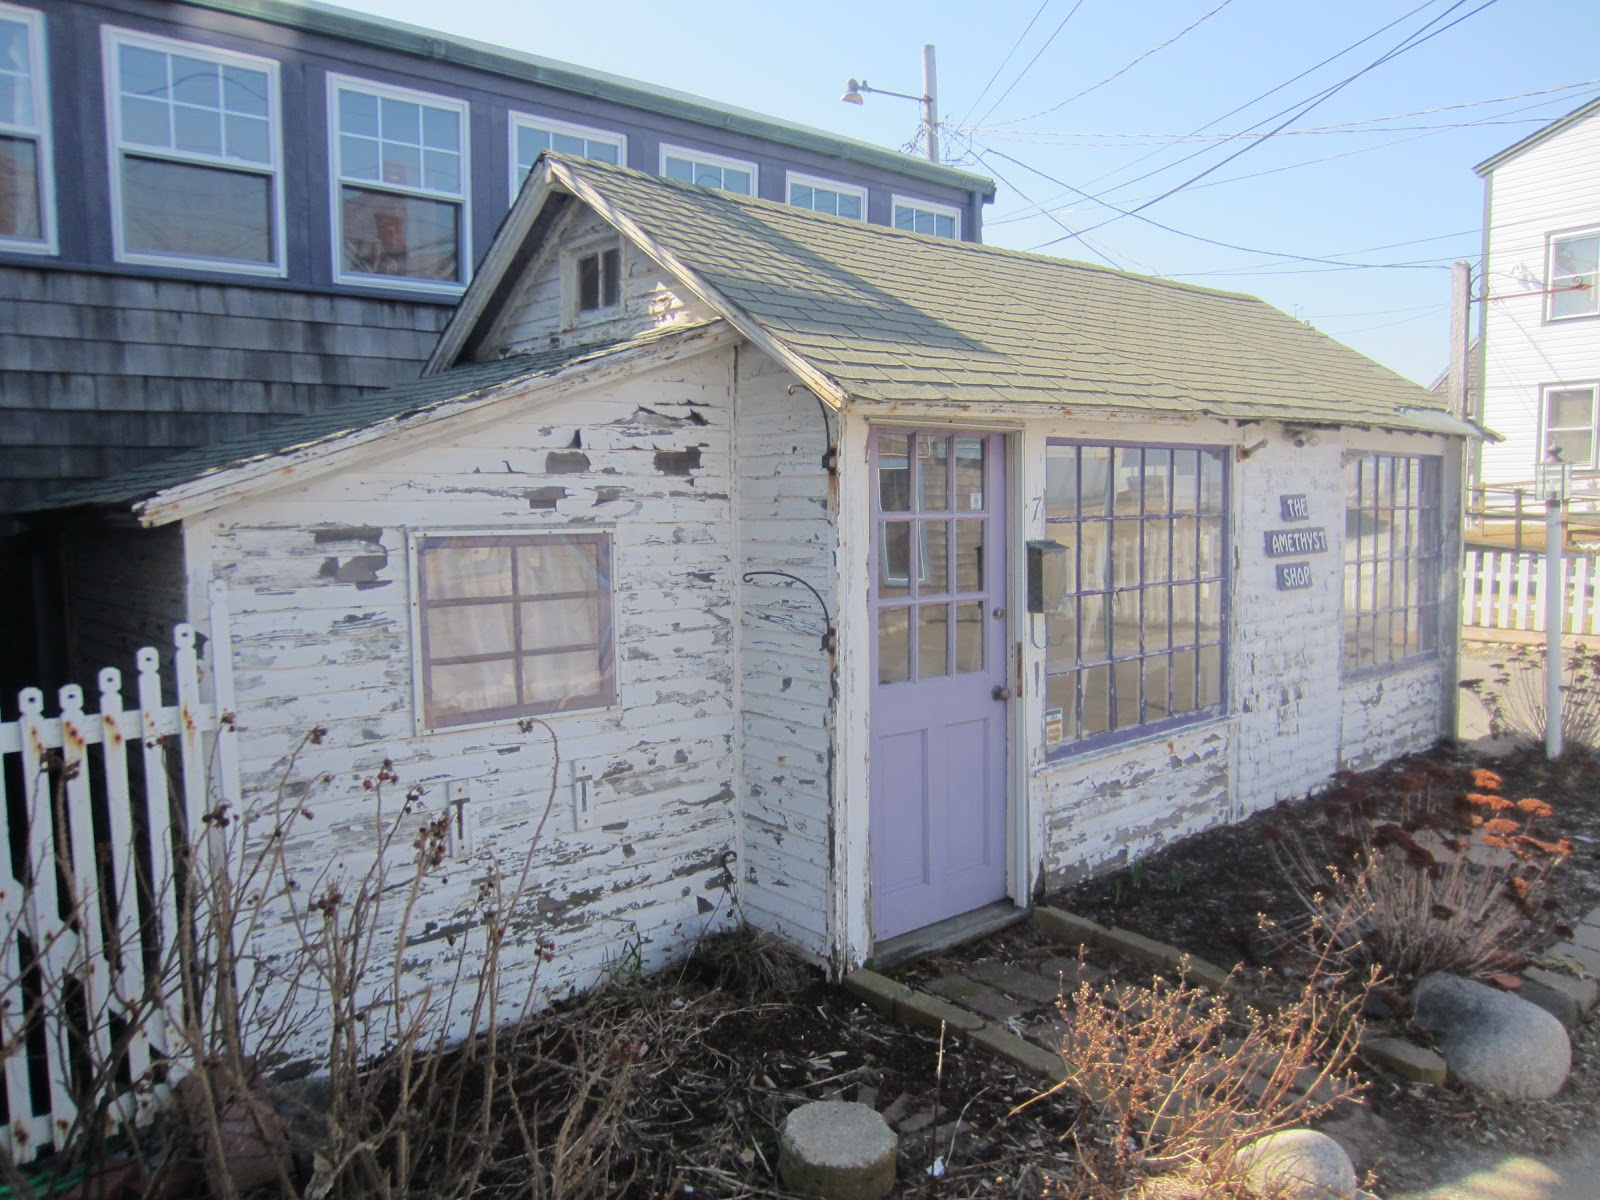 Relaxshacks Ten Really Cool Tiny Houses In Rockport